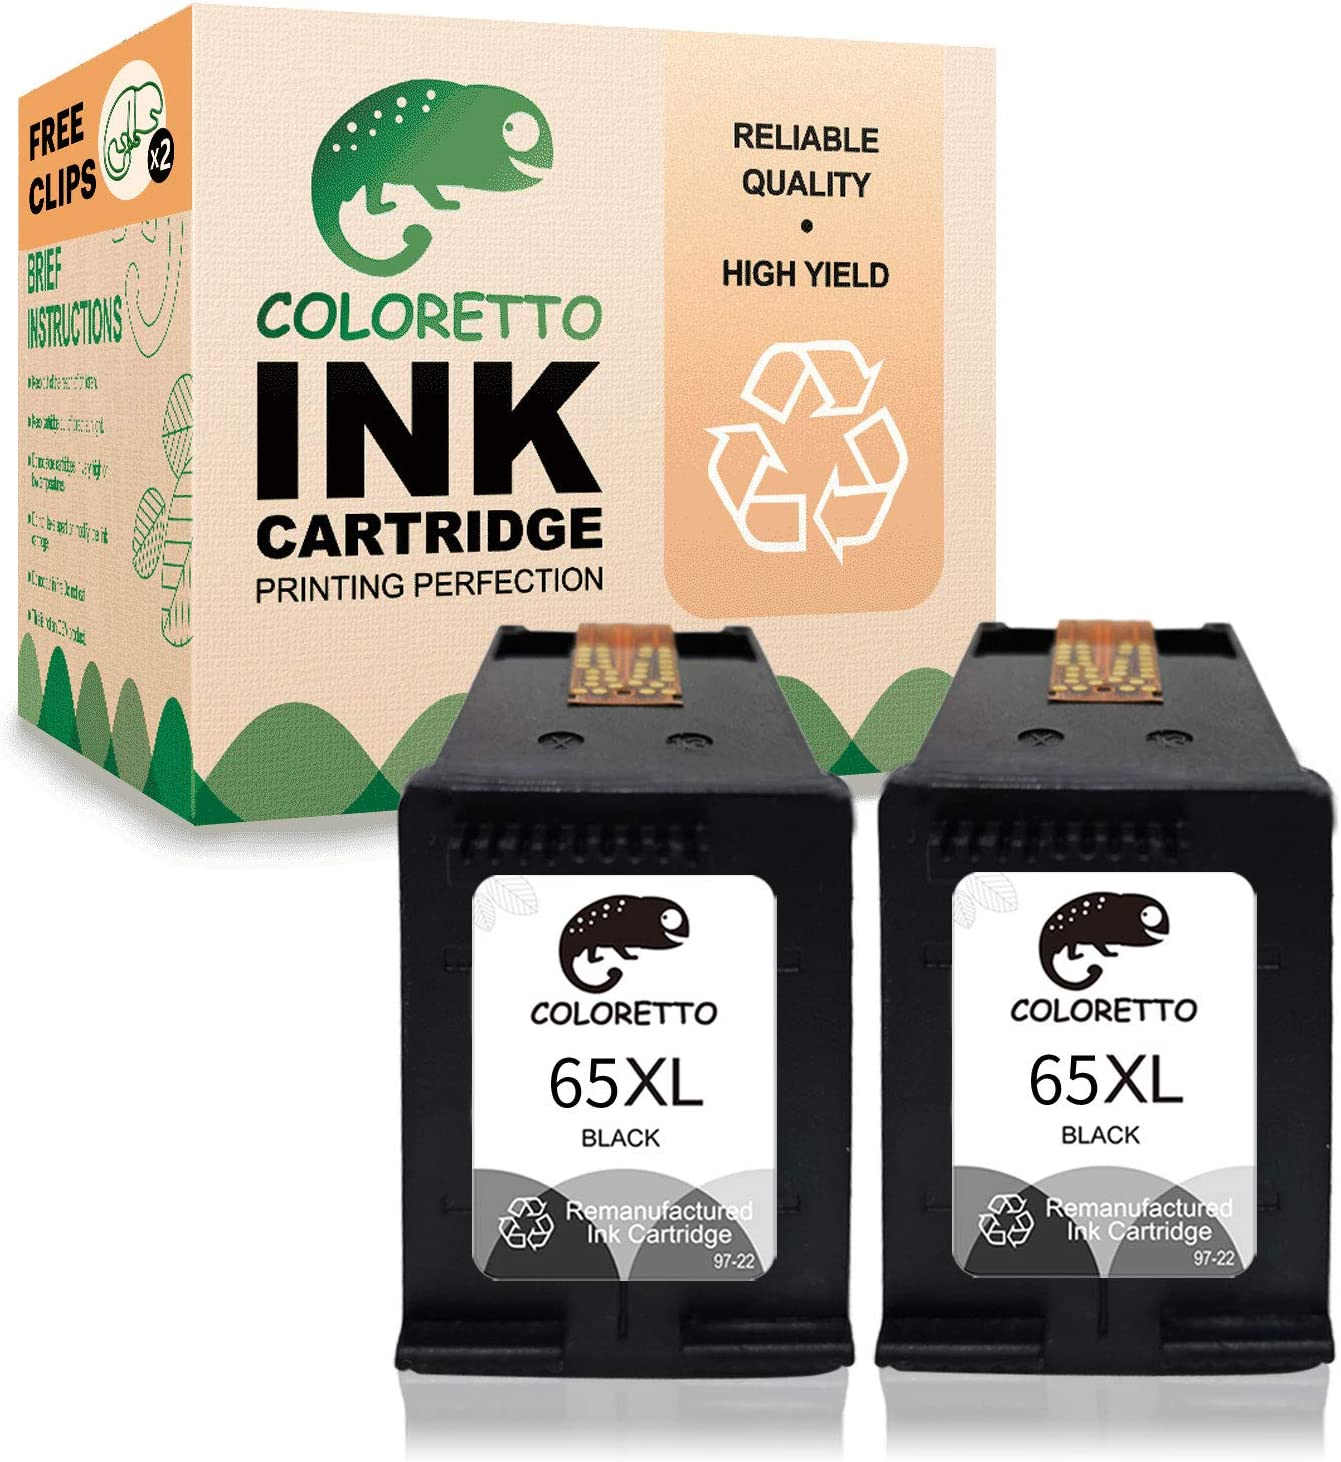 Coloretto Remanufactured Printer Ink Cartridge Replacement for HP 65XL 65 65 XL, used in Deskjet Series 2622 2624 2652 2680 2730 3720 3721 3723 3732 3752 3755 3758 Envy Series 5052 5055 5058 (2 Black)